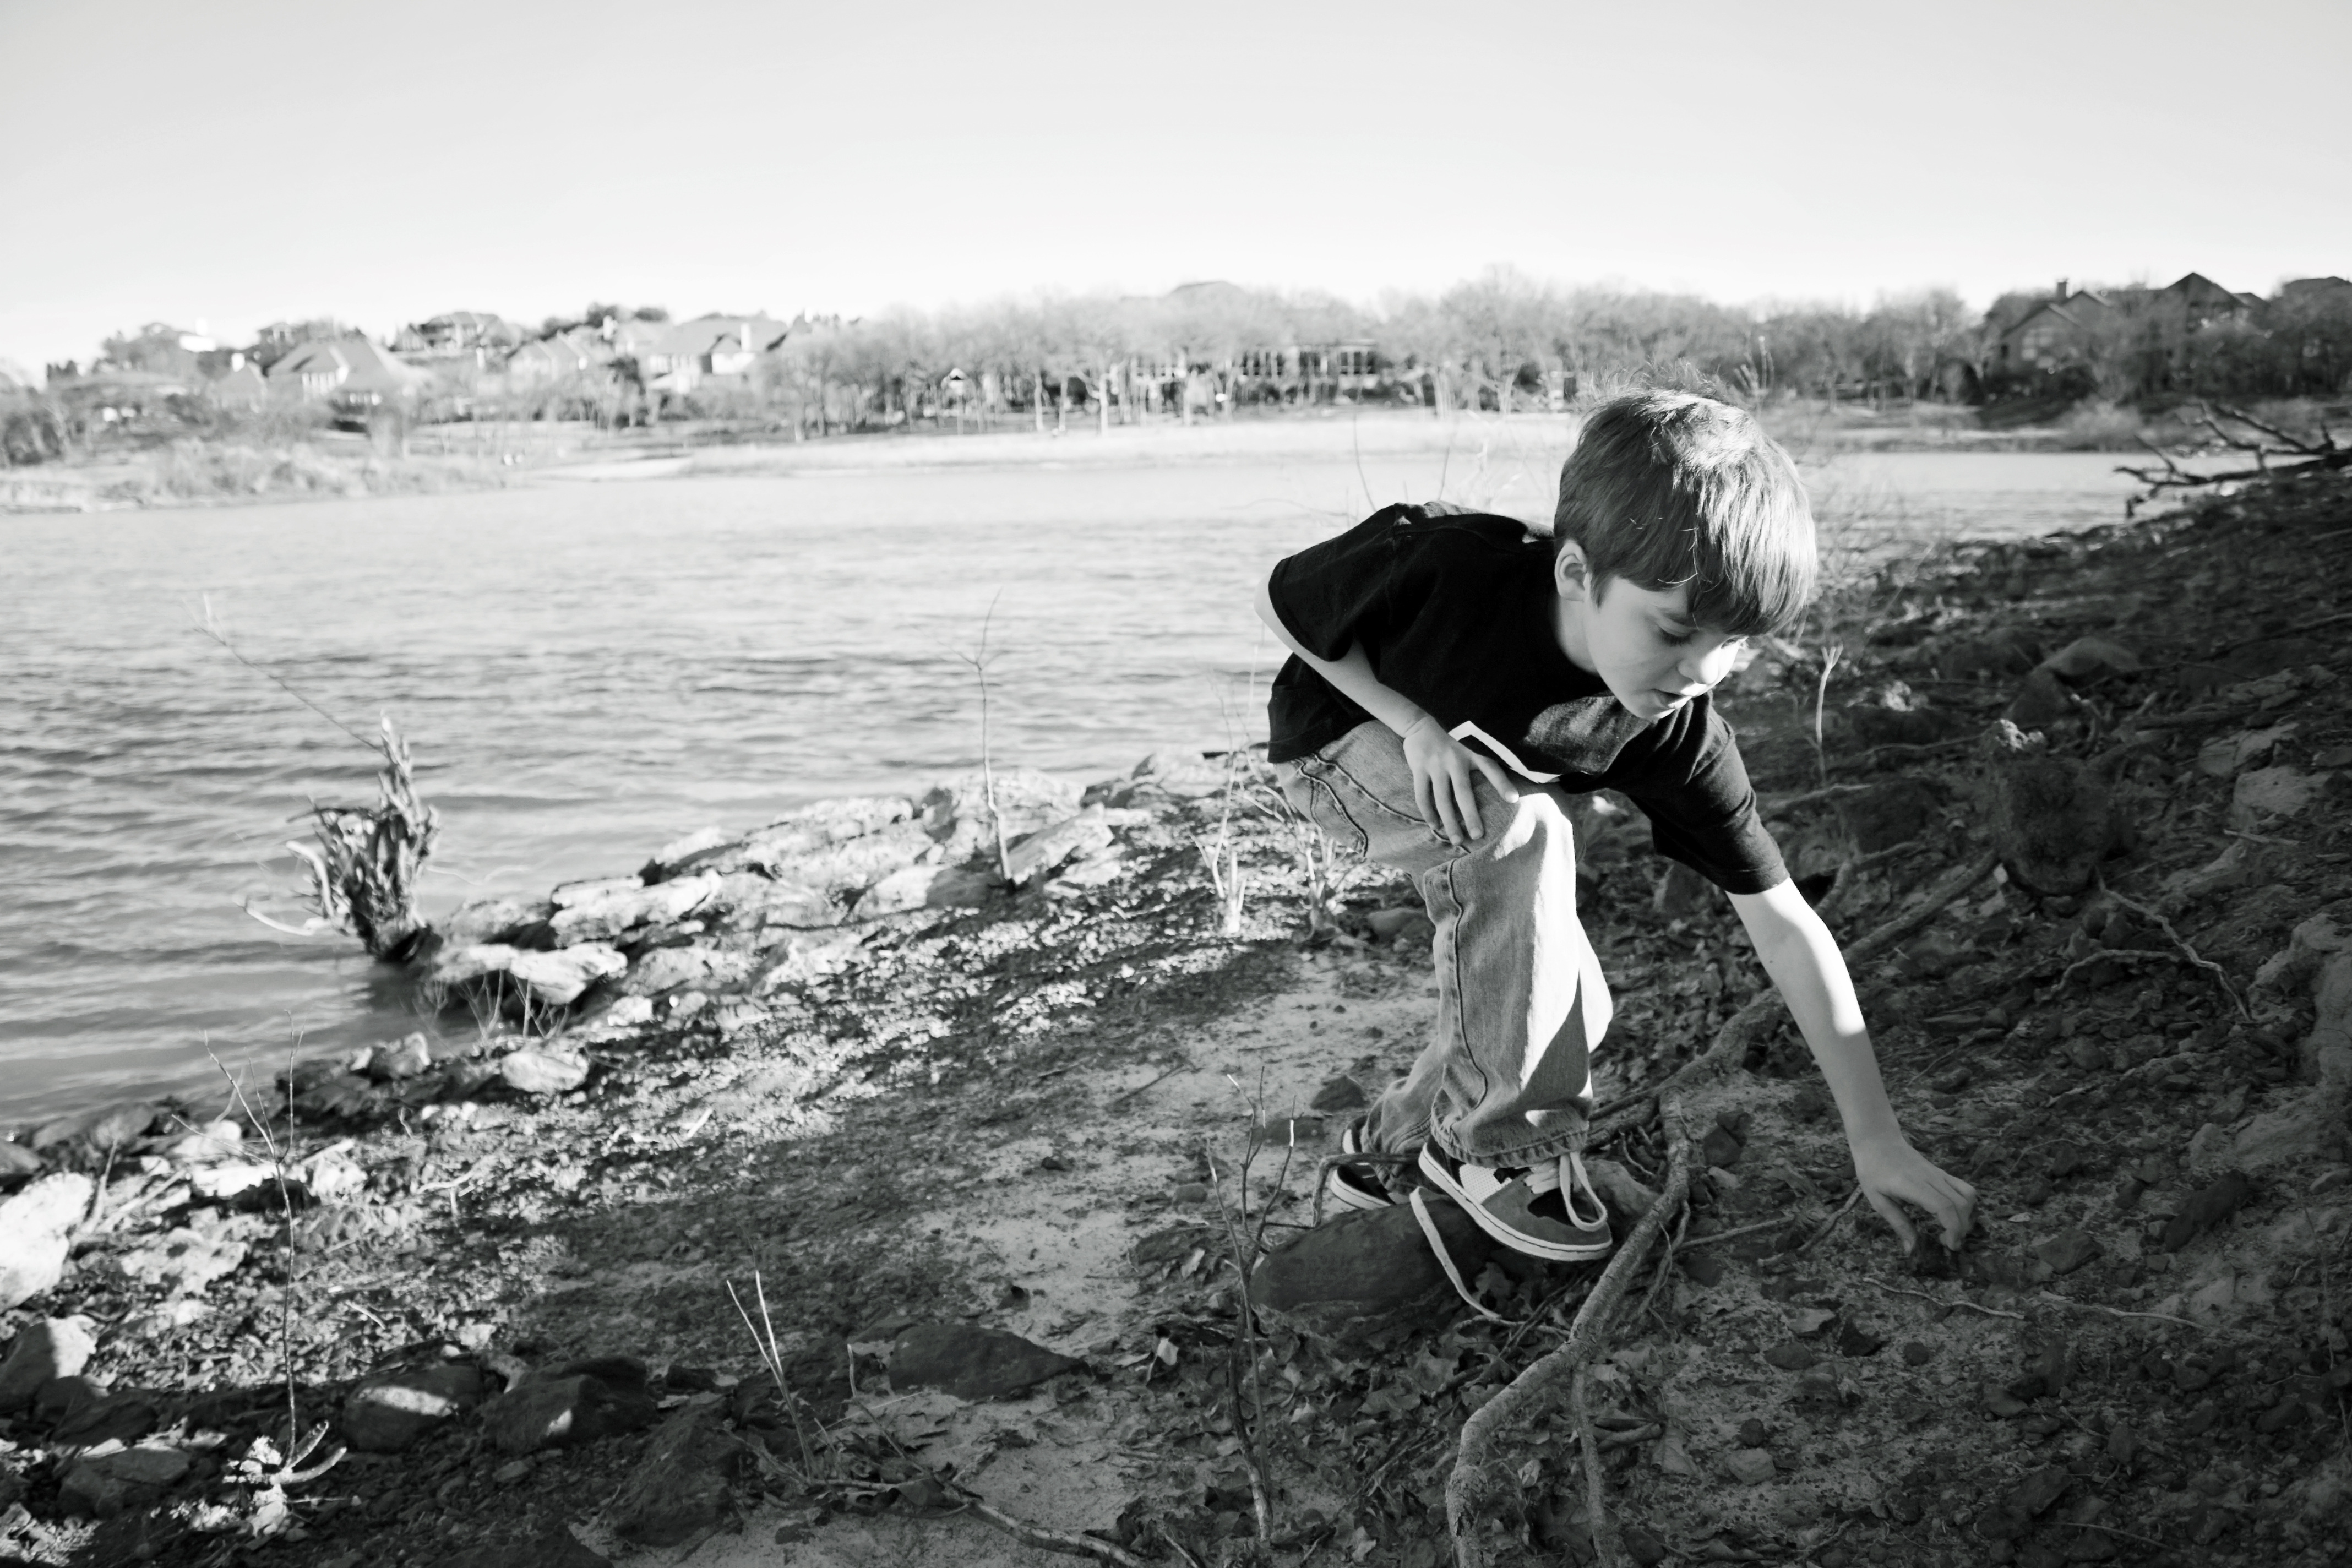 Boy playing in dirt by the lake